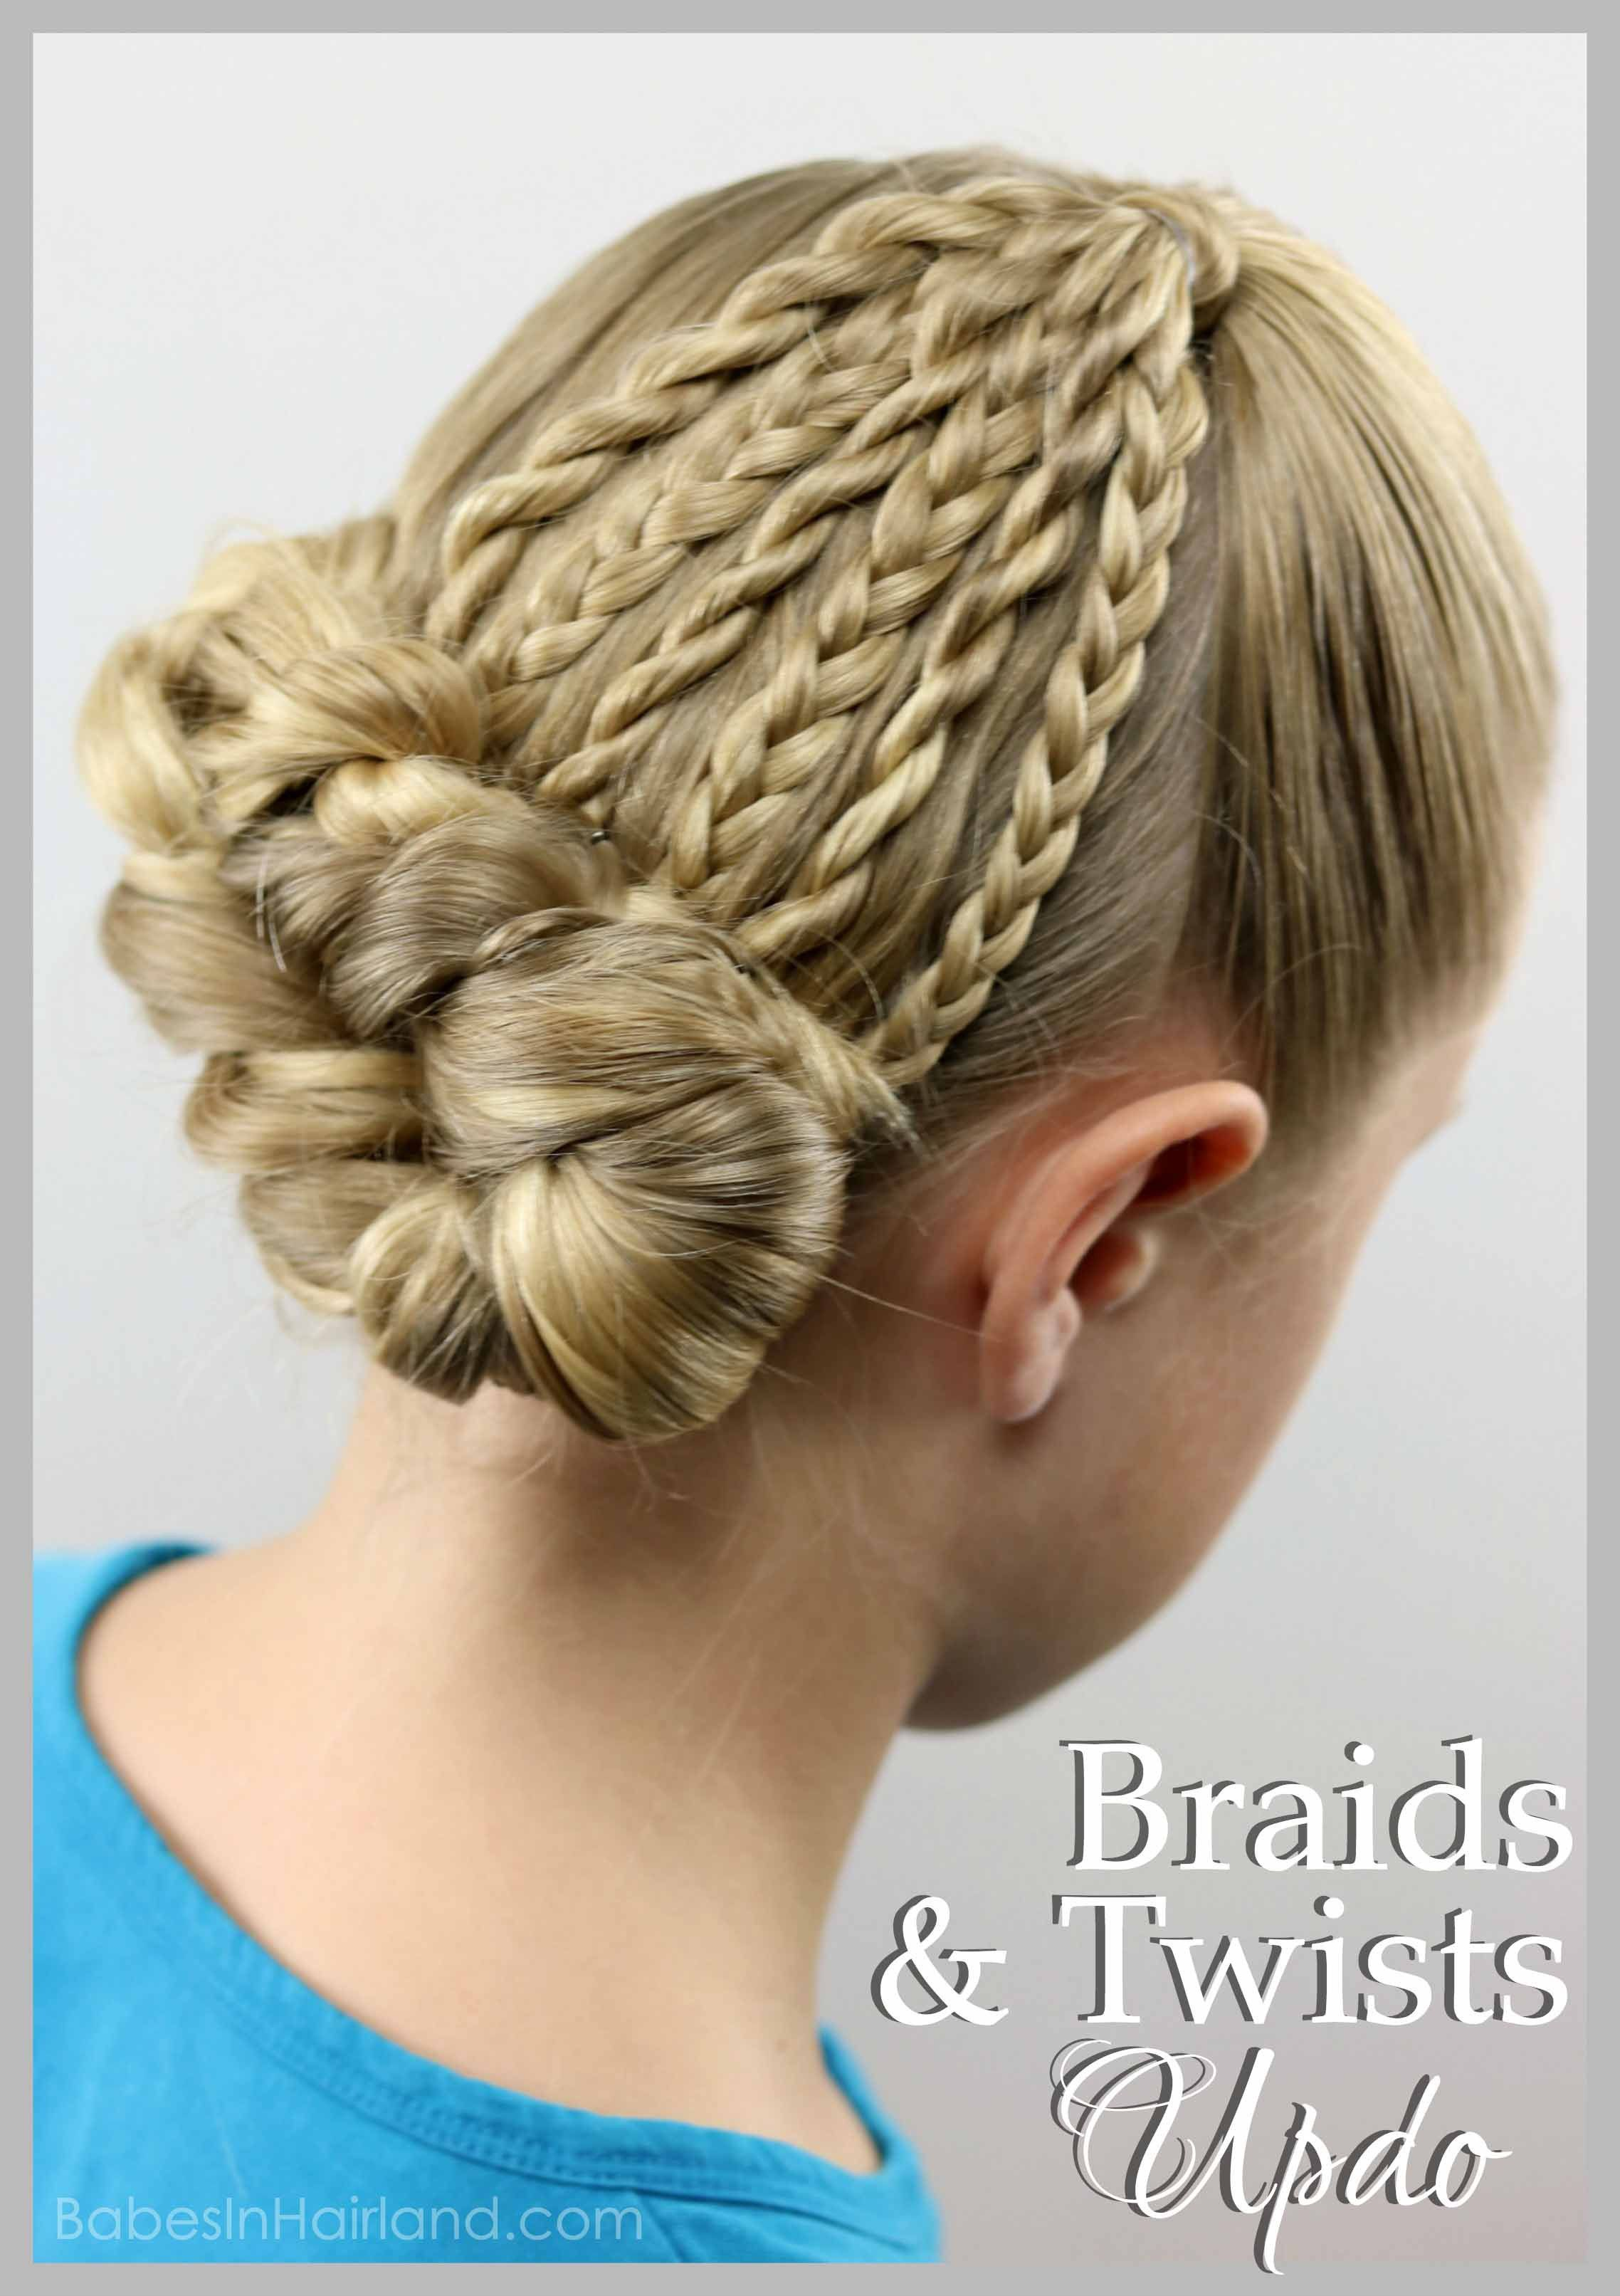 Stay cool this summer with a twists & braids updo hairstyle from